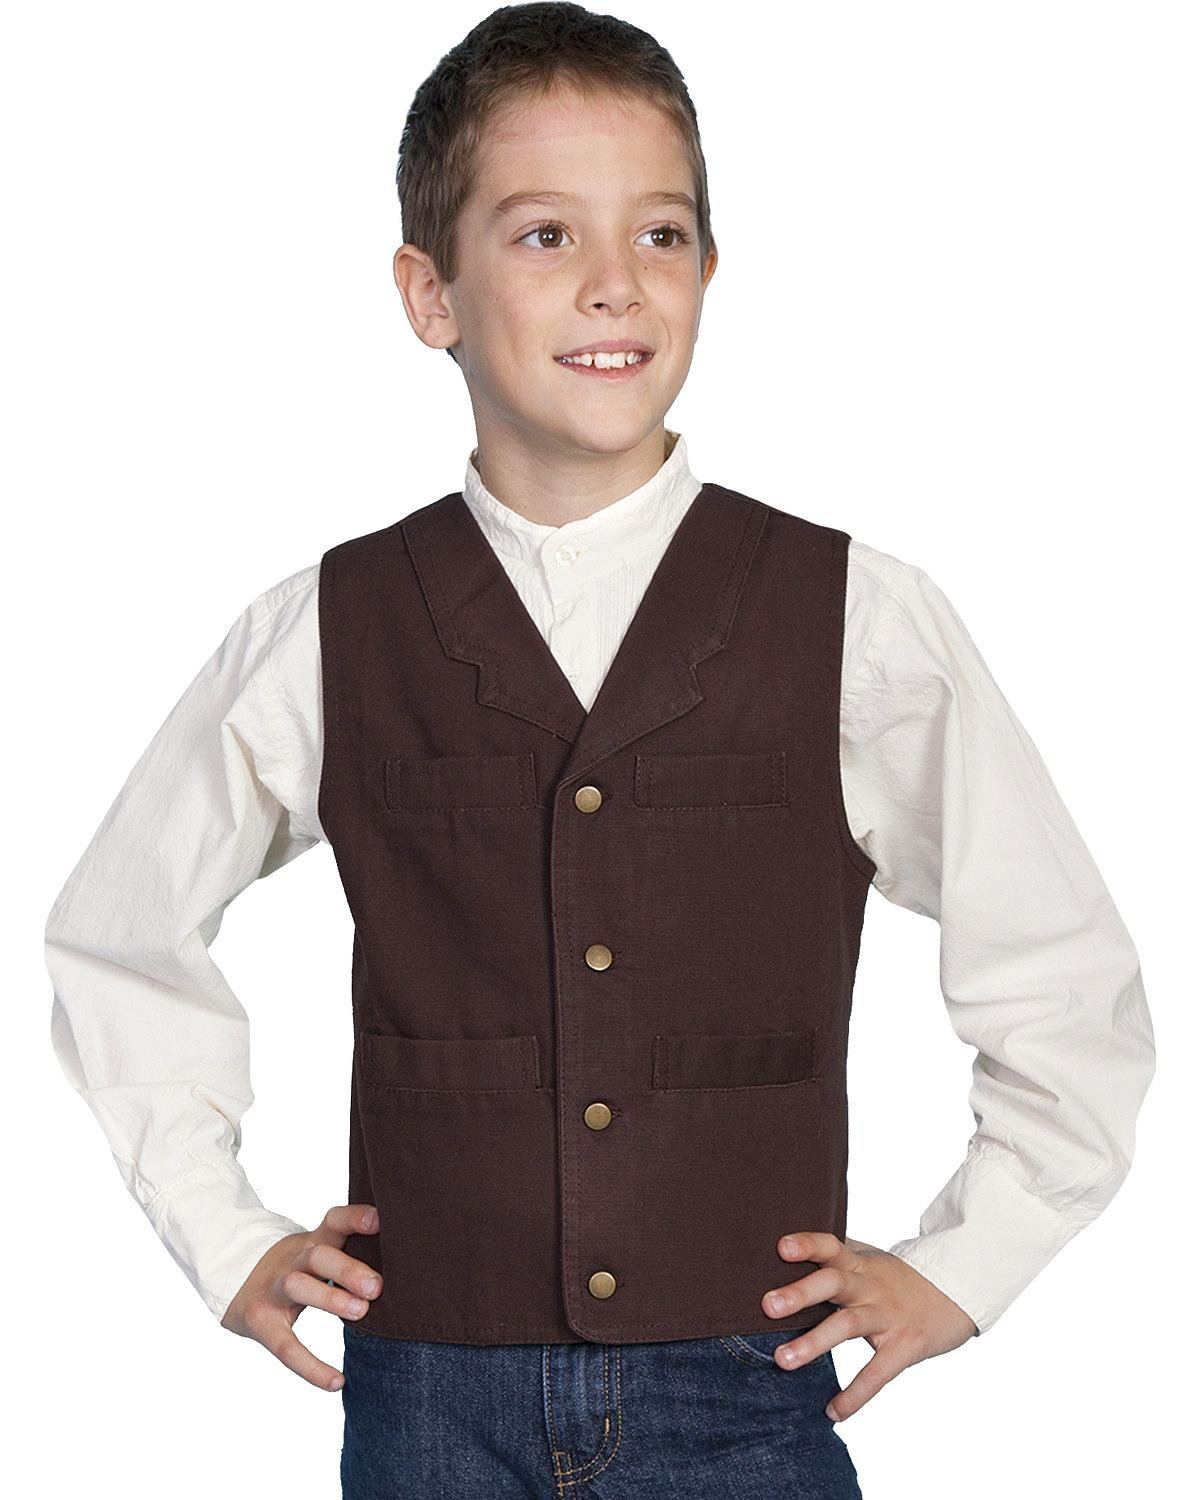 Steampunk Kids Costumes | Girl, Boy, Baby, Toddler Scully Boys Canvas Vest - Rw041k Wal $36.02 AT vintagedancer.com